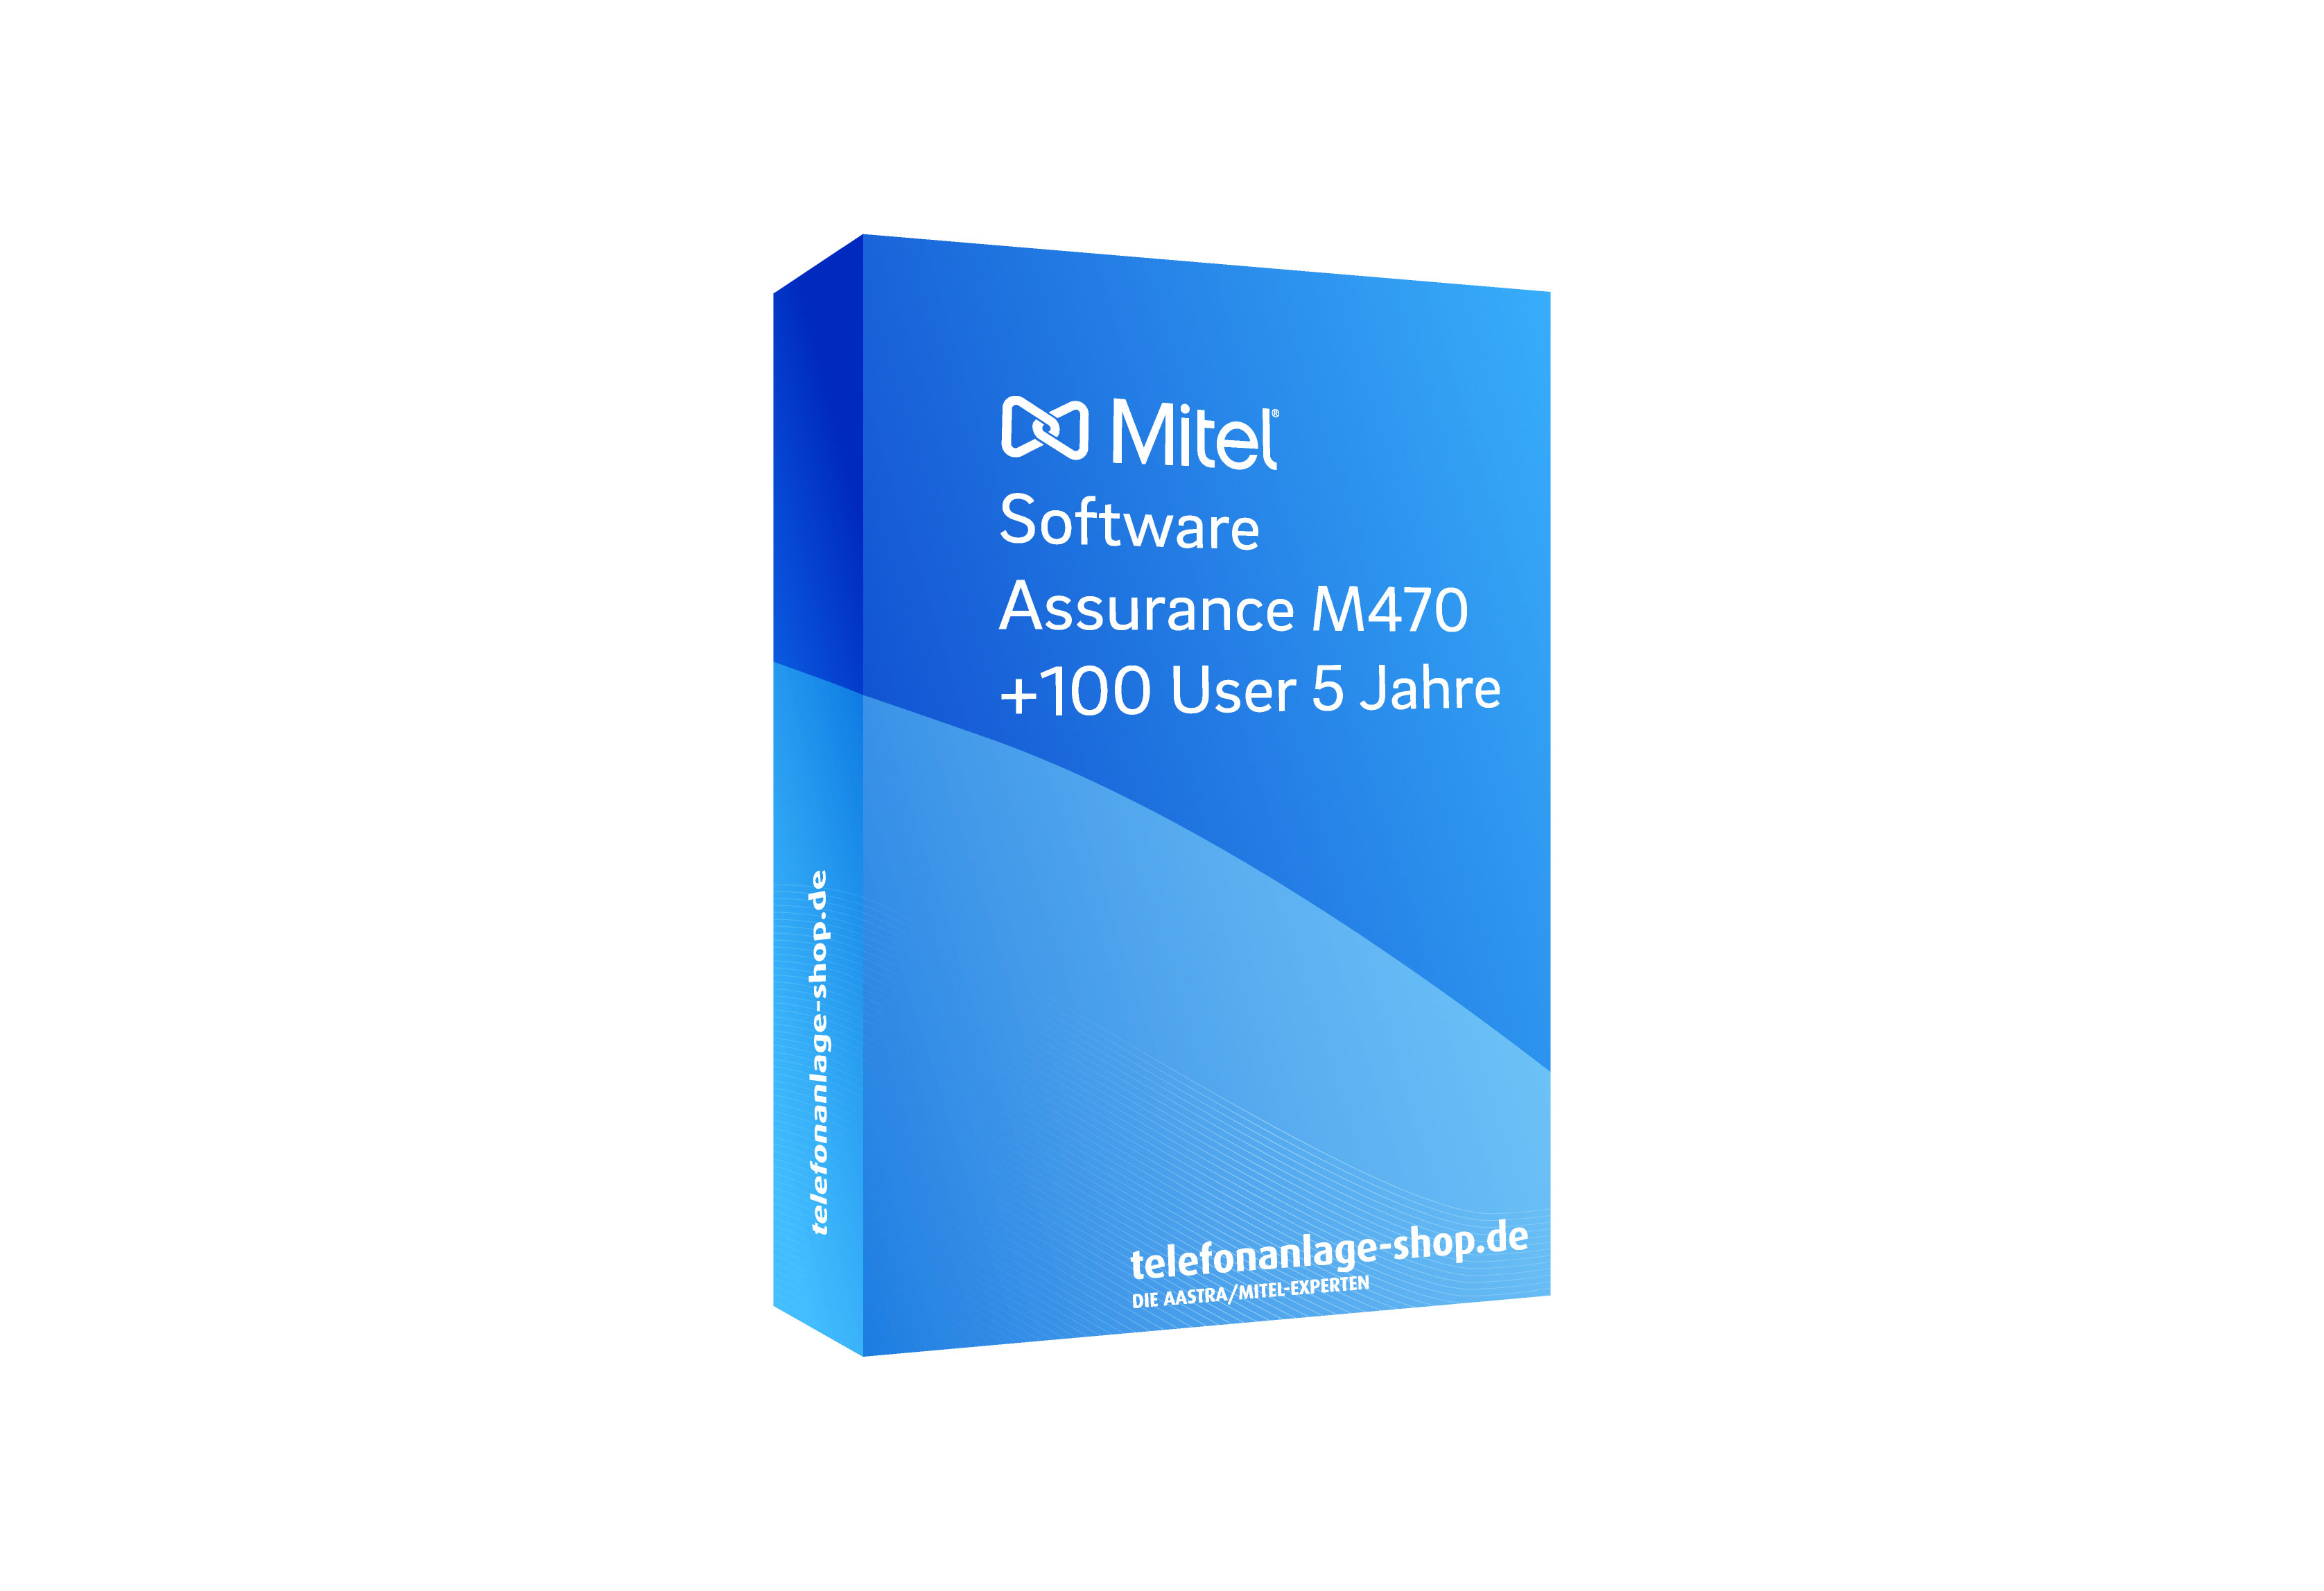 Vollansicht - Mitel Software Assurance M470 +100 User 5Jahre